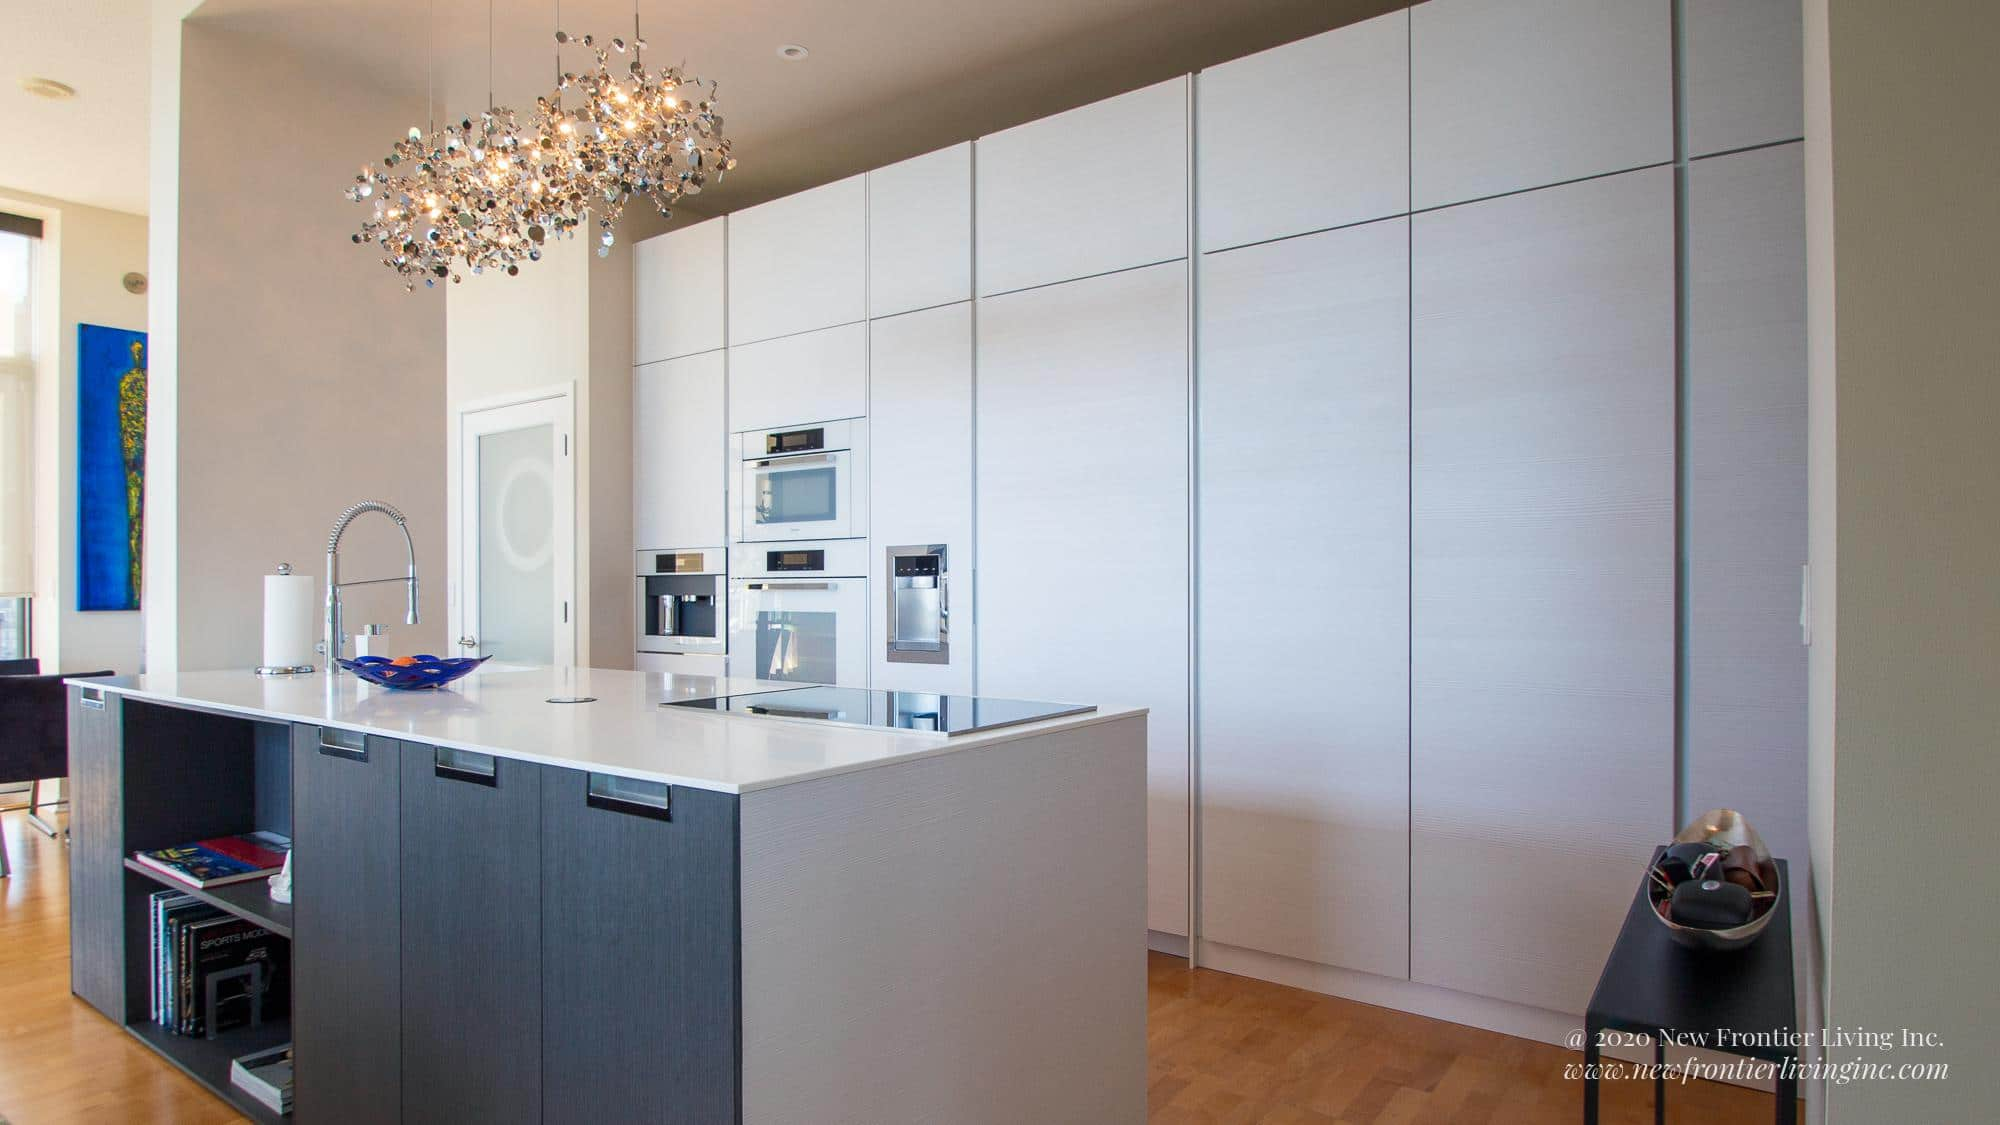 White waterfall kitchen island with black cabinetry, hanging pendant lights above